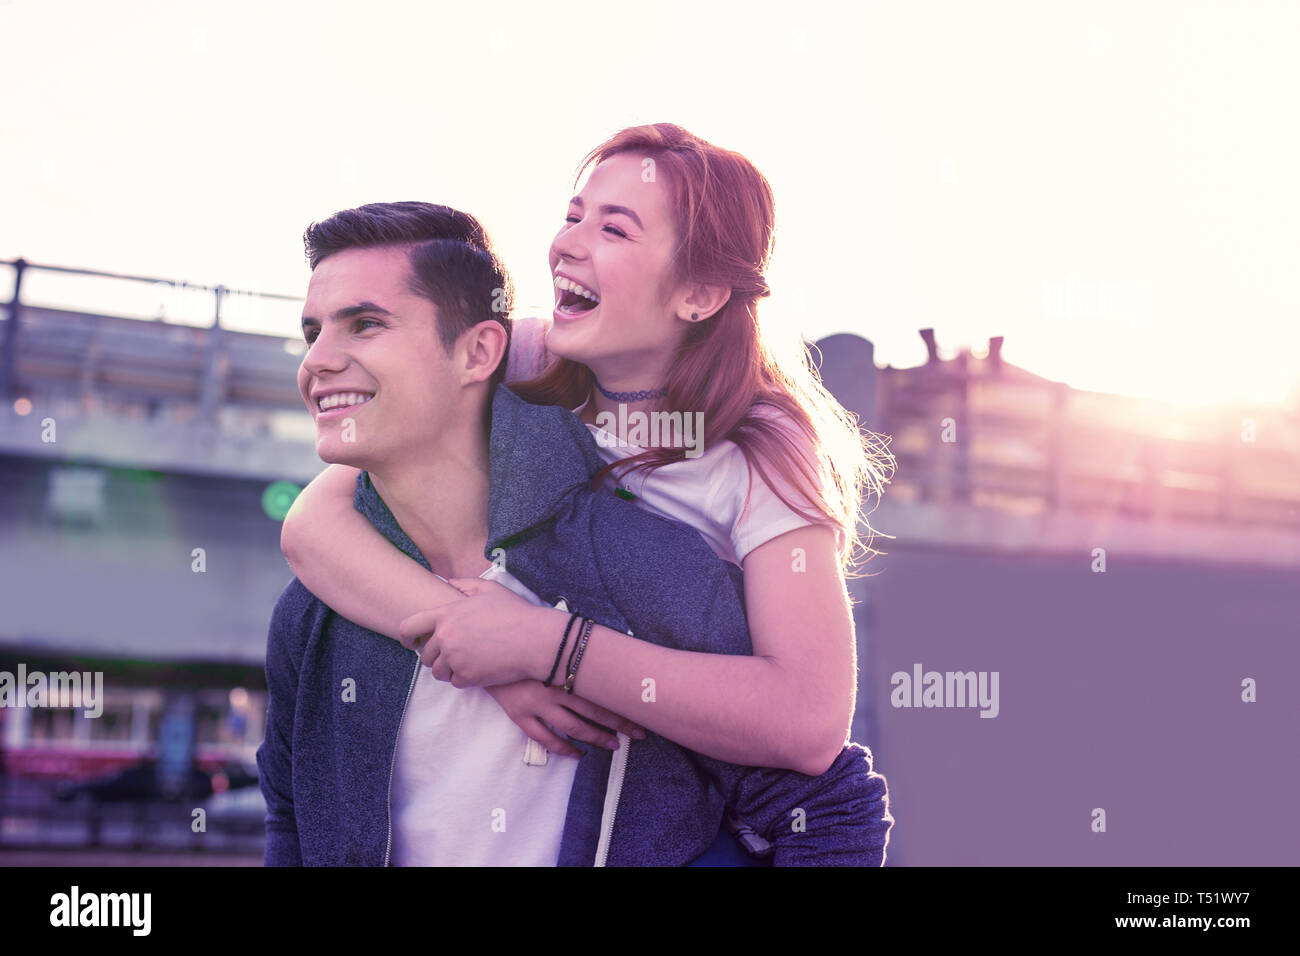 Happy laughing couple being extremely close to each other - Stock Image